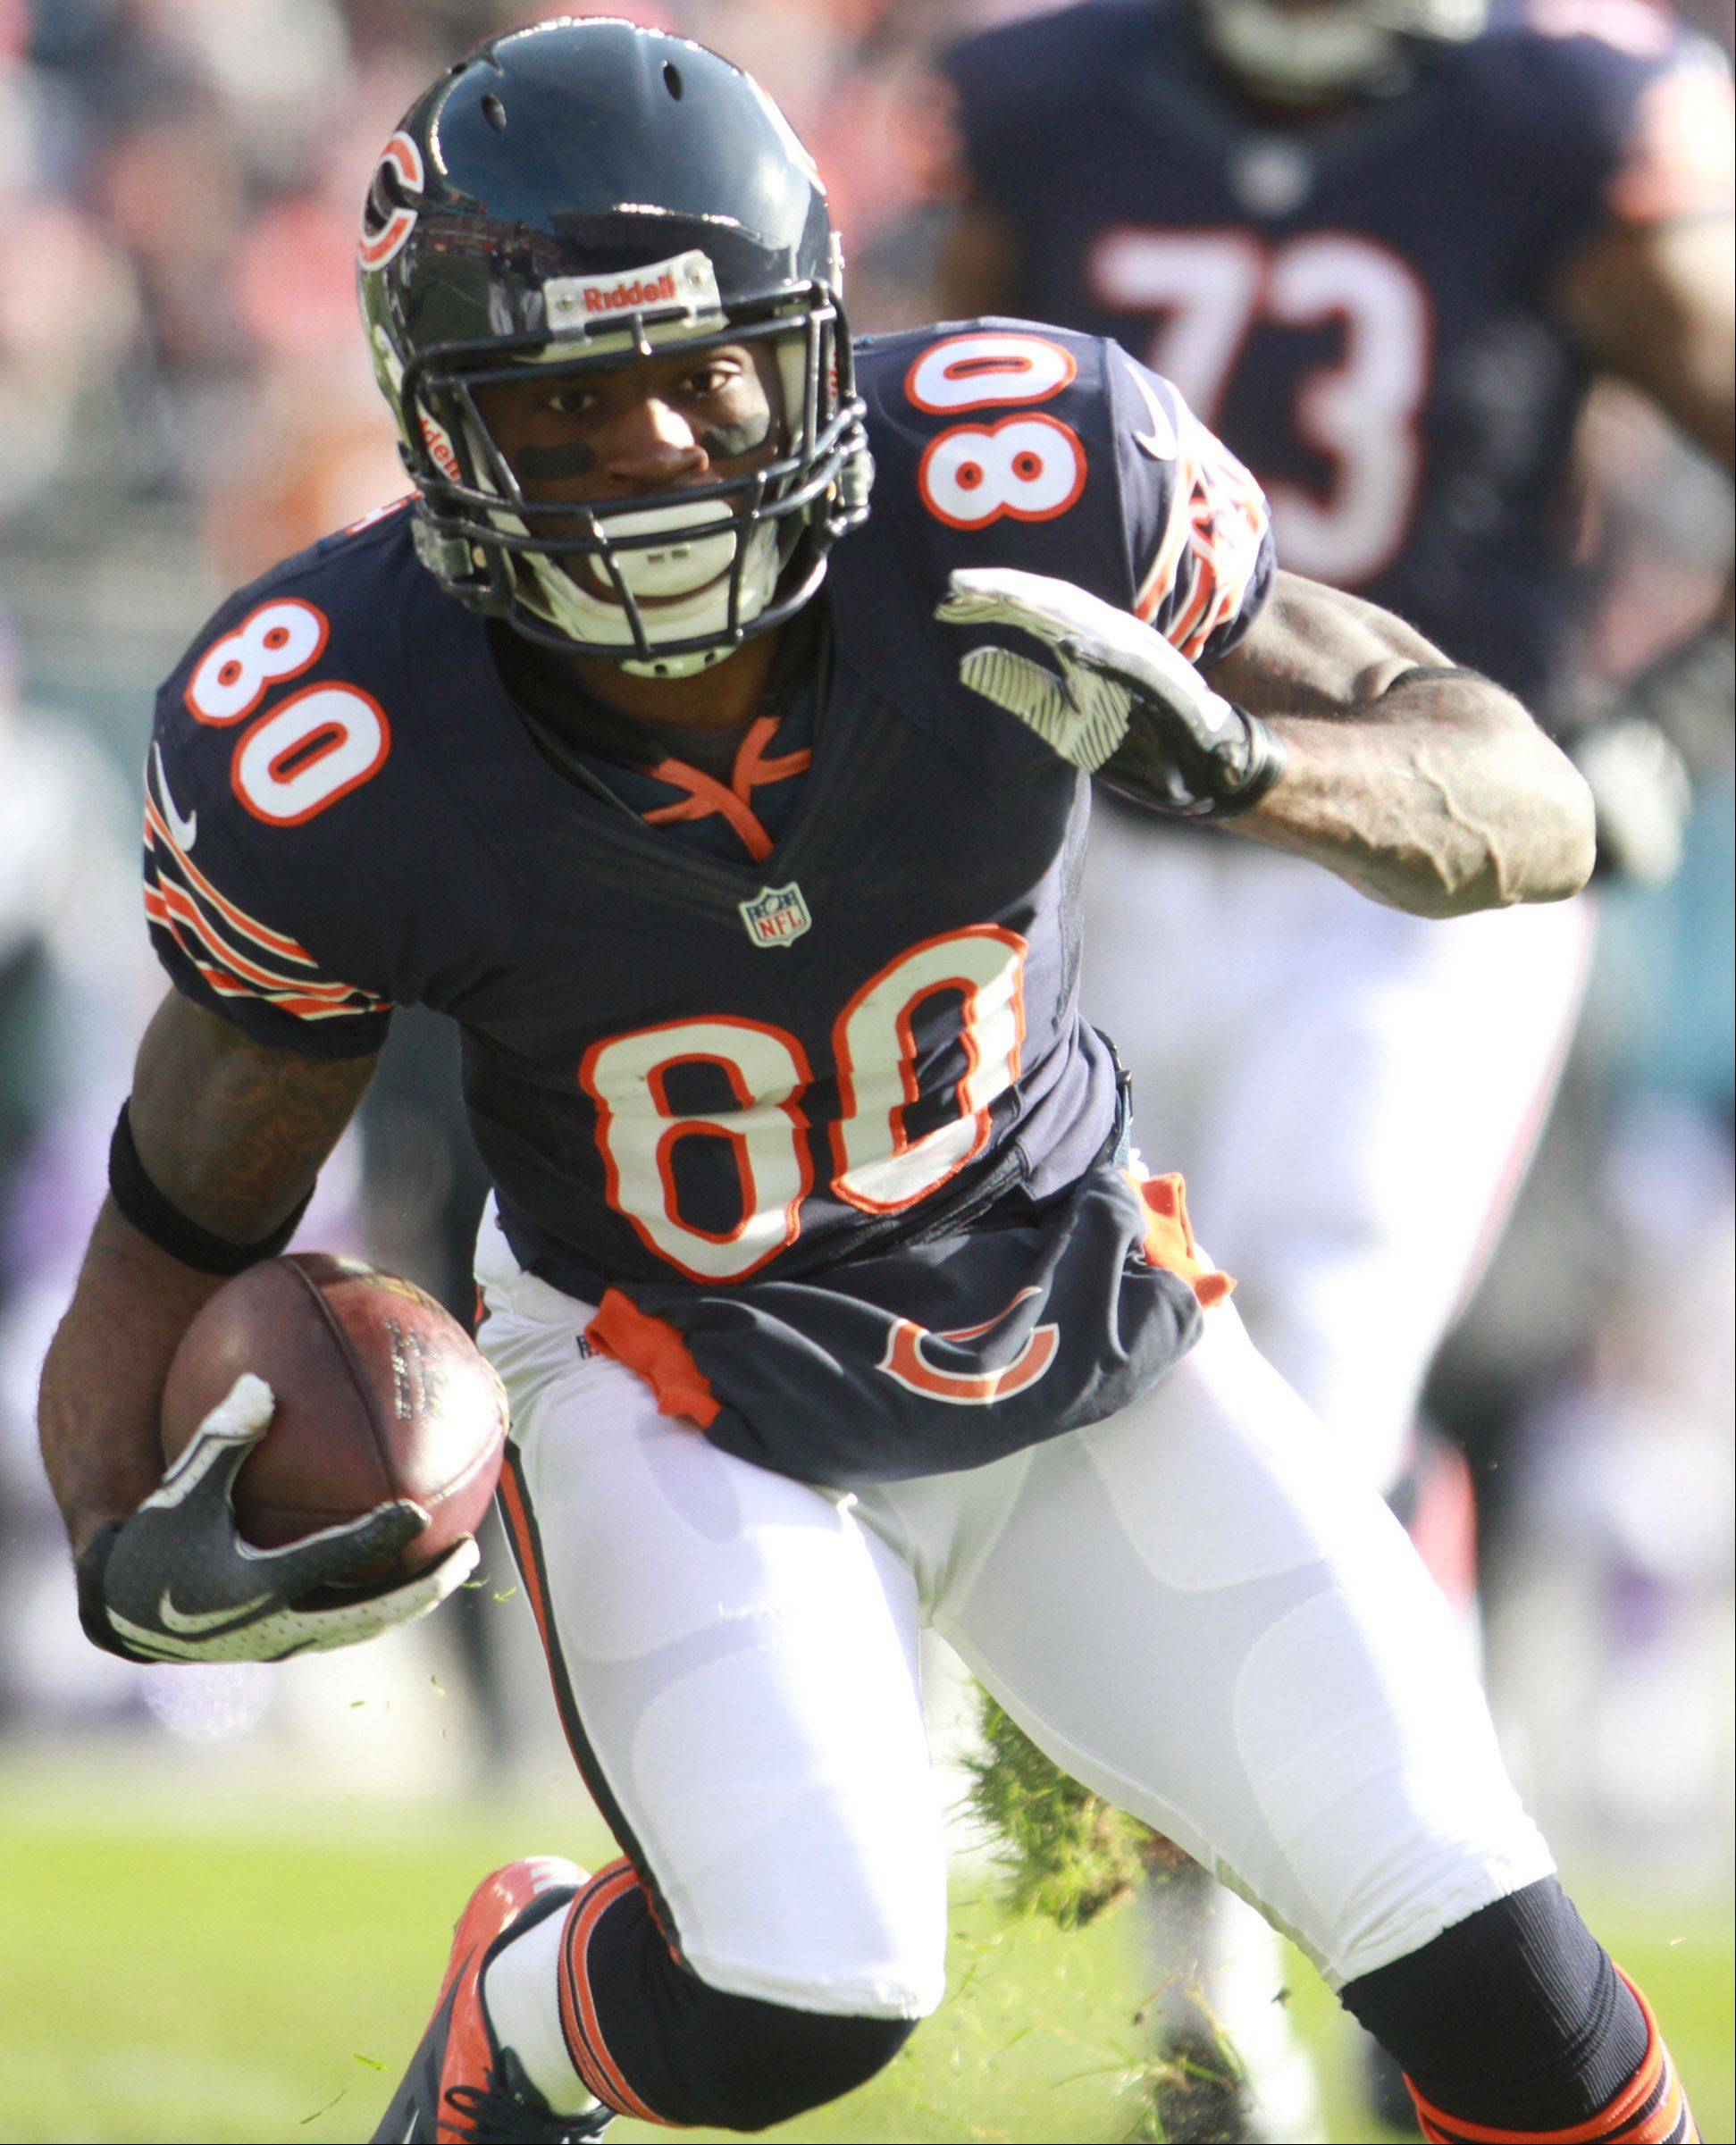 Bears wide receiver Earl Bennett, who has been sidelined with a concussion, said he is aware of the dangers but is confident he has fully recovered.